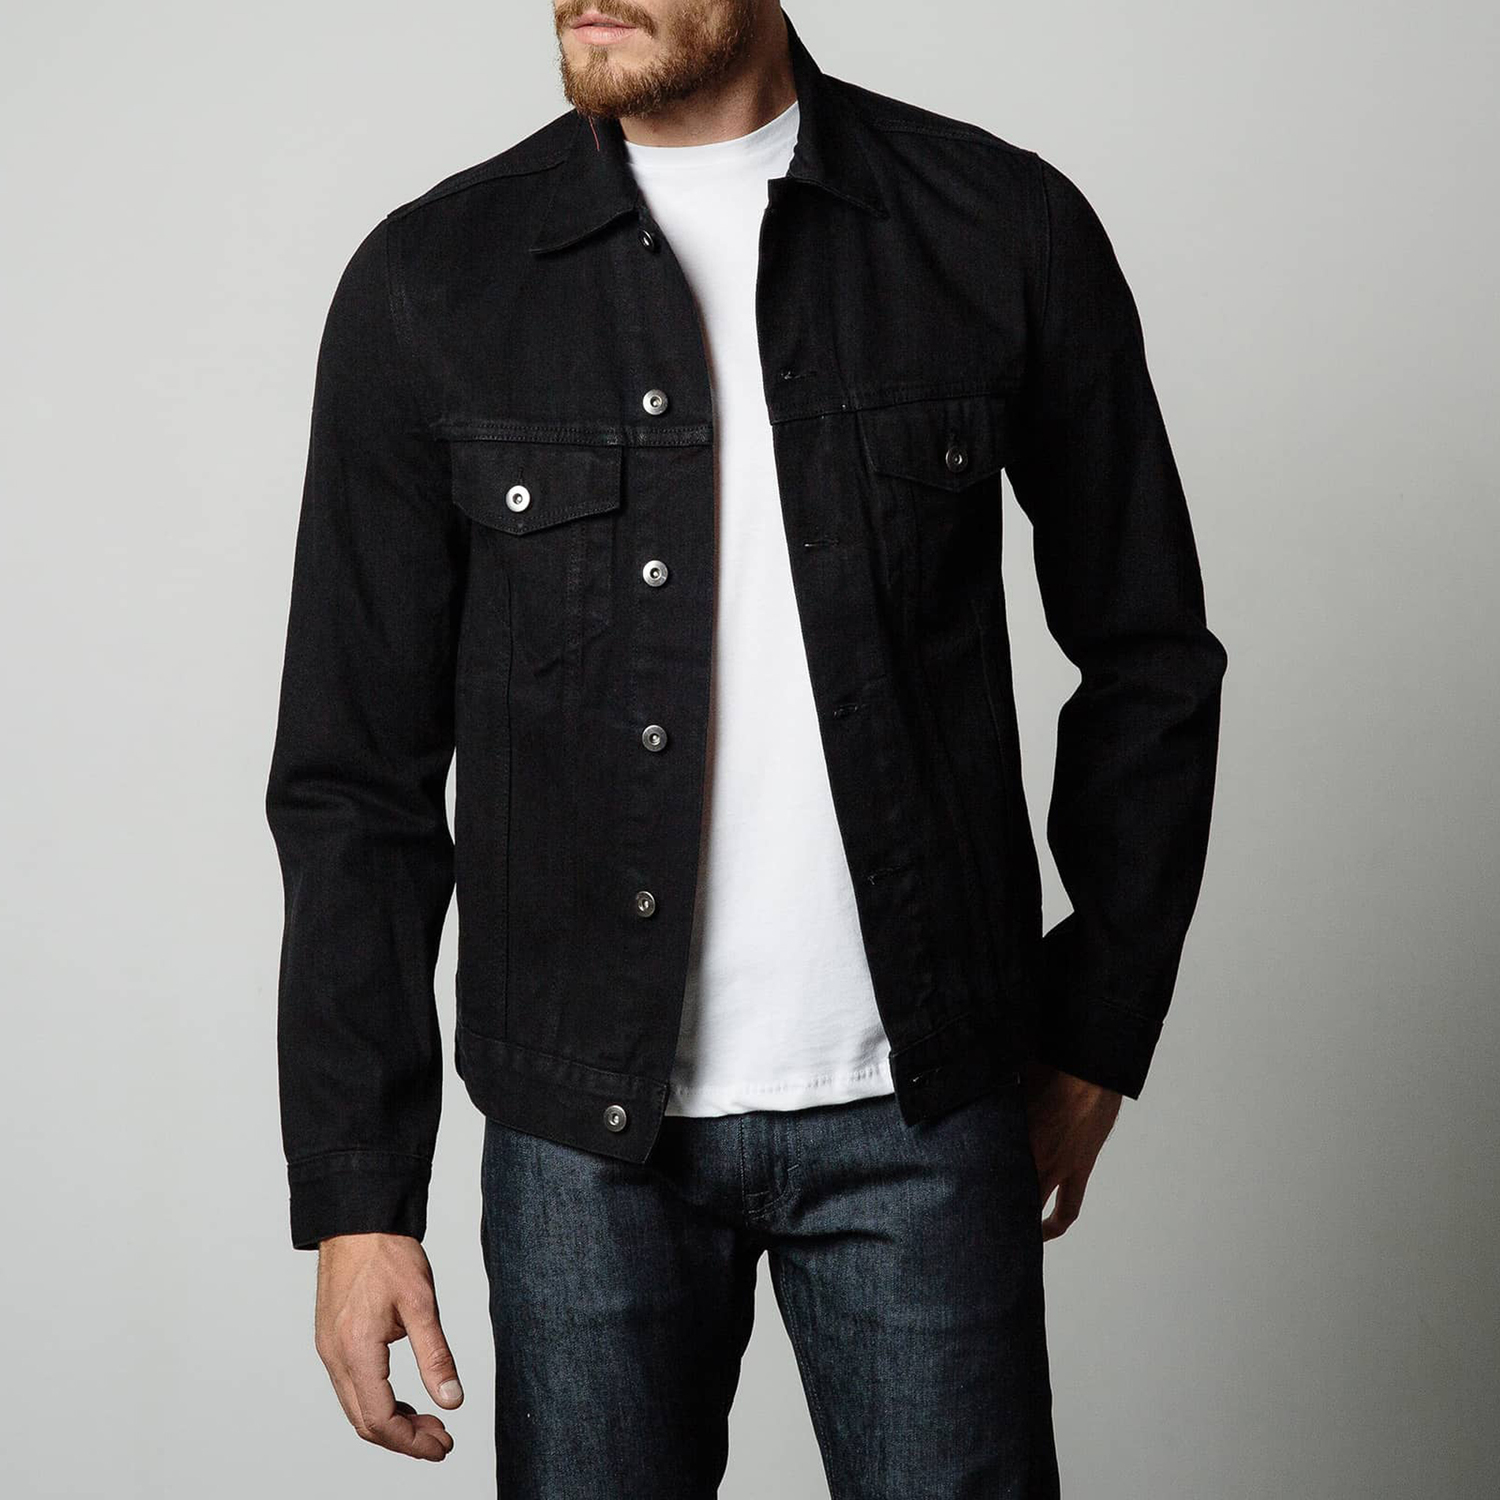 Mens Denim Jacket In Jet Black $95 | DSTLD